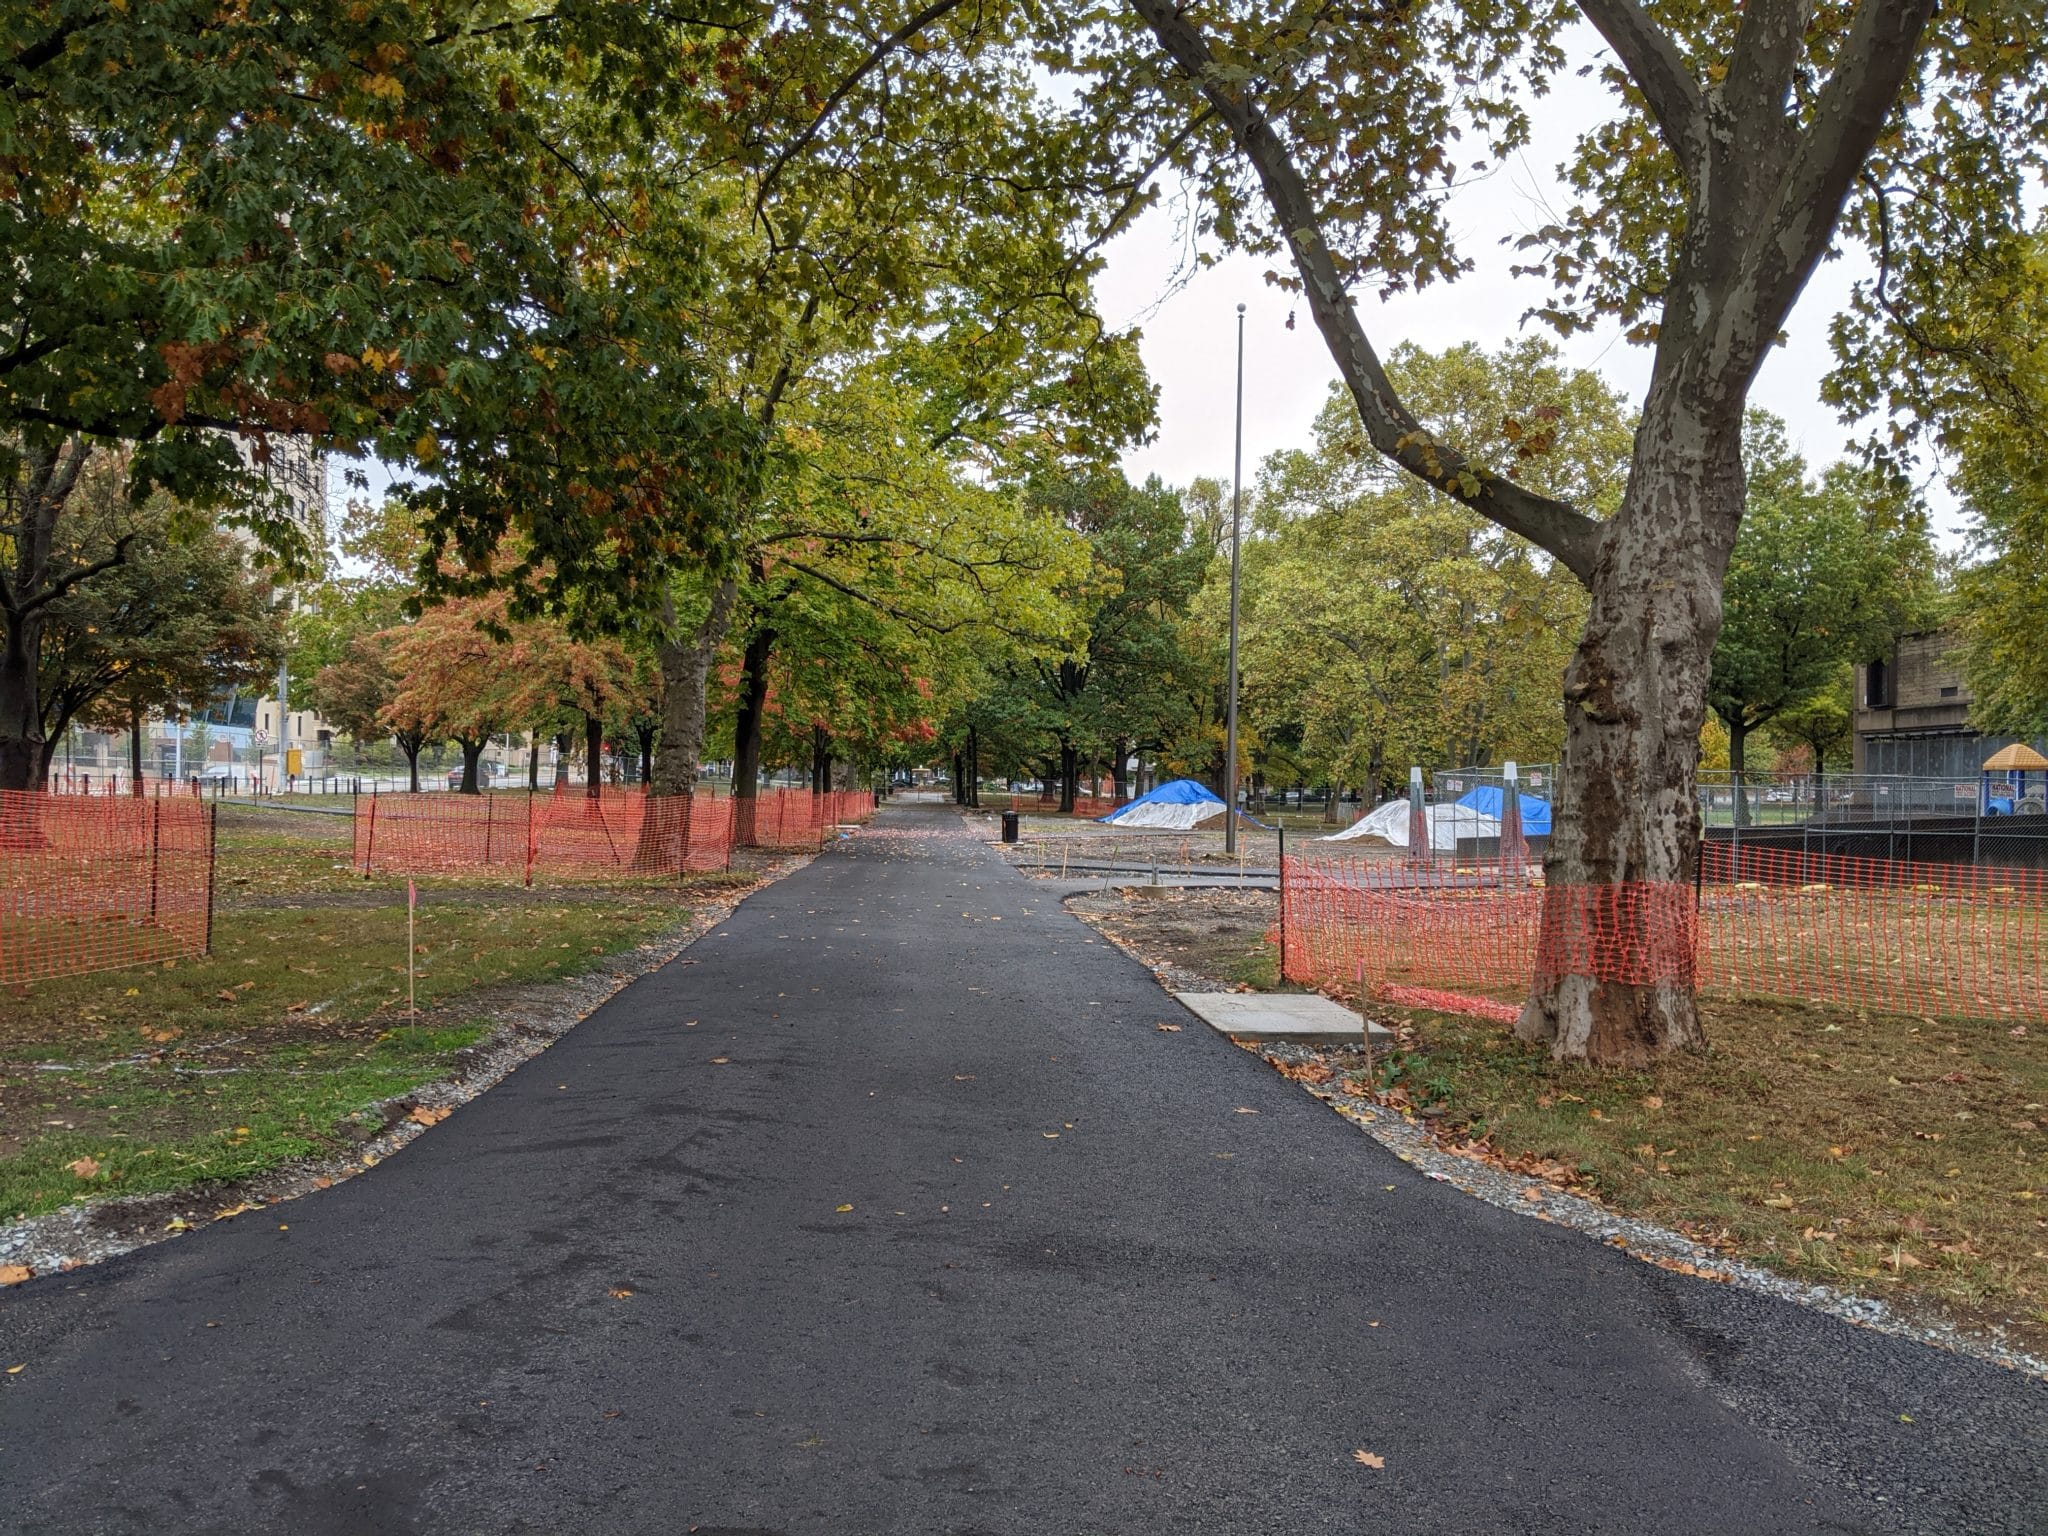 An image of the North Promenade pathway in Allegheny Commons Park.